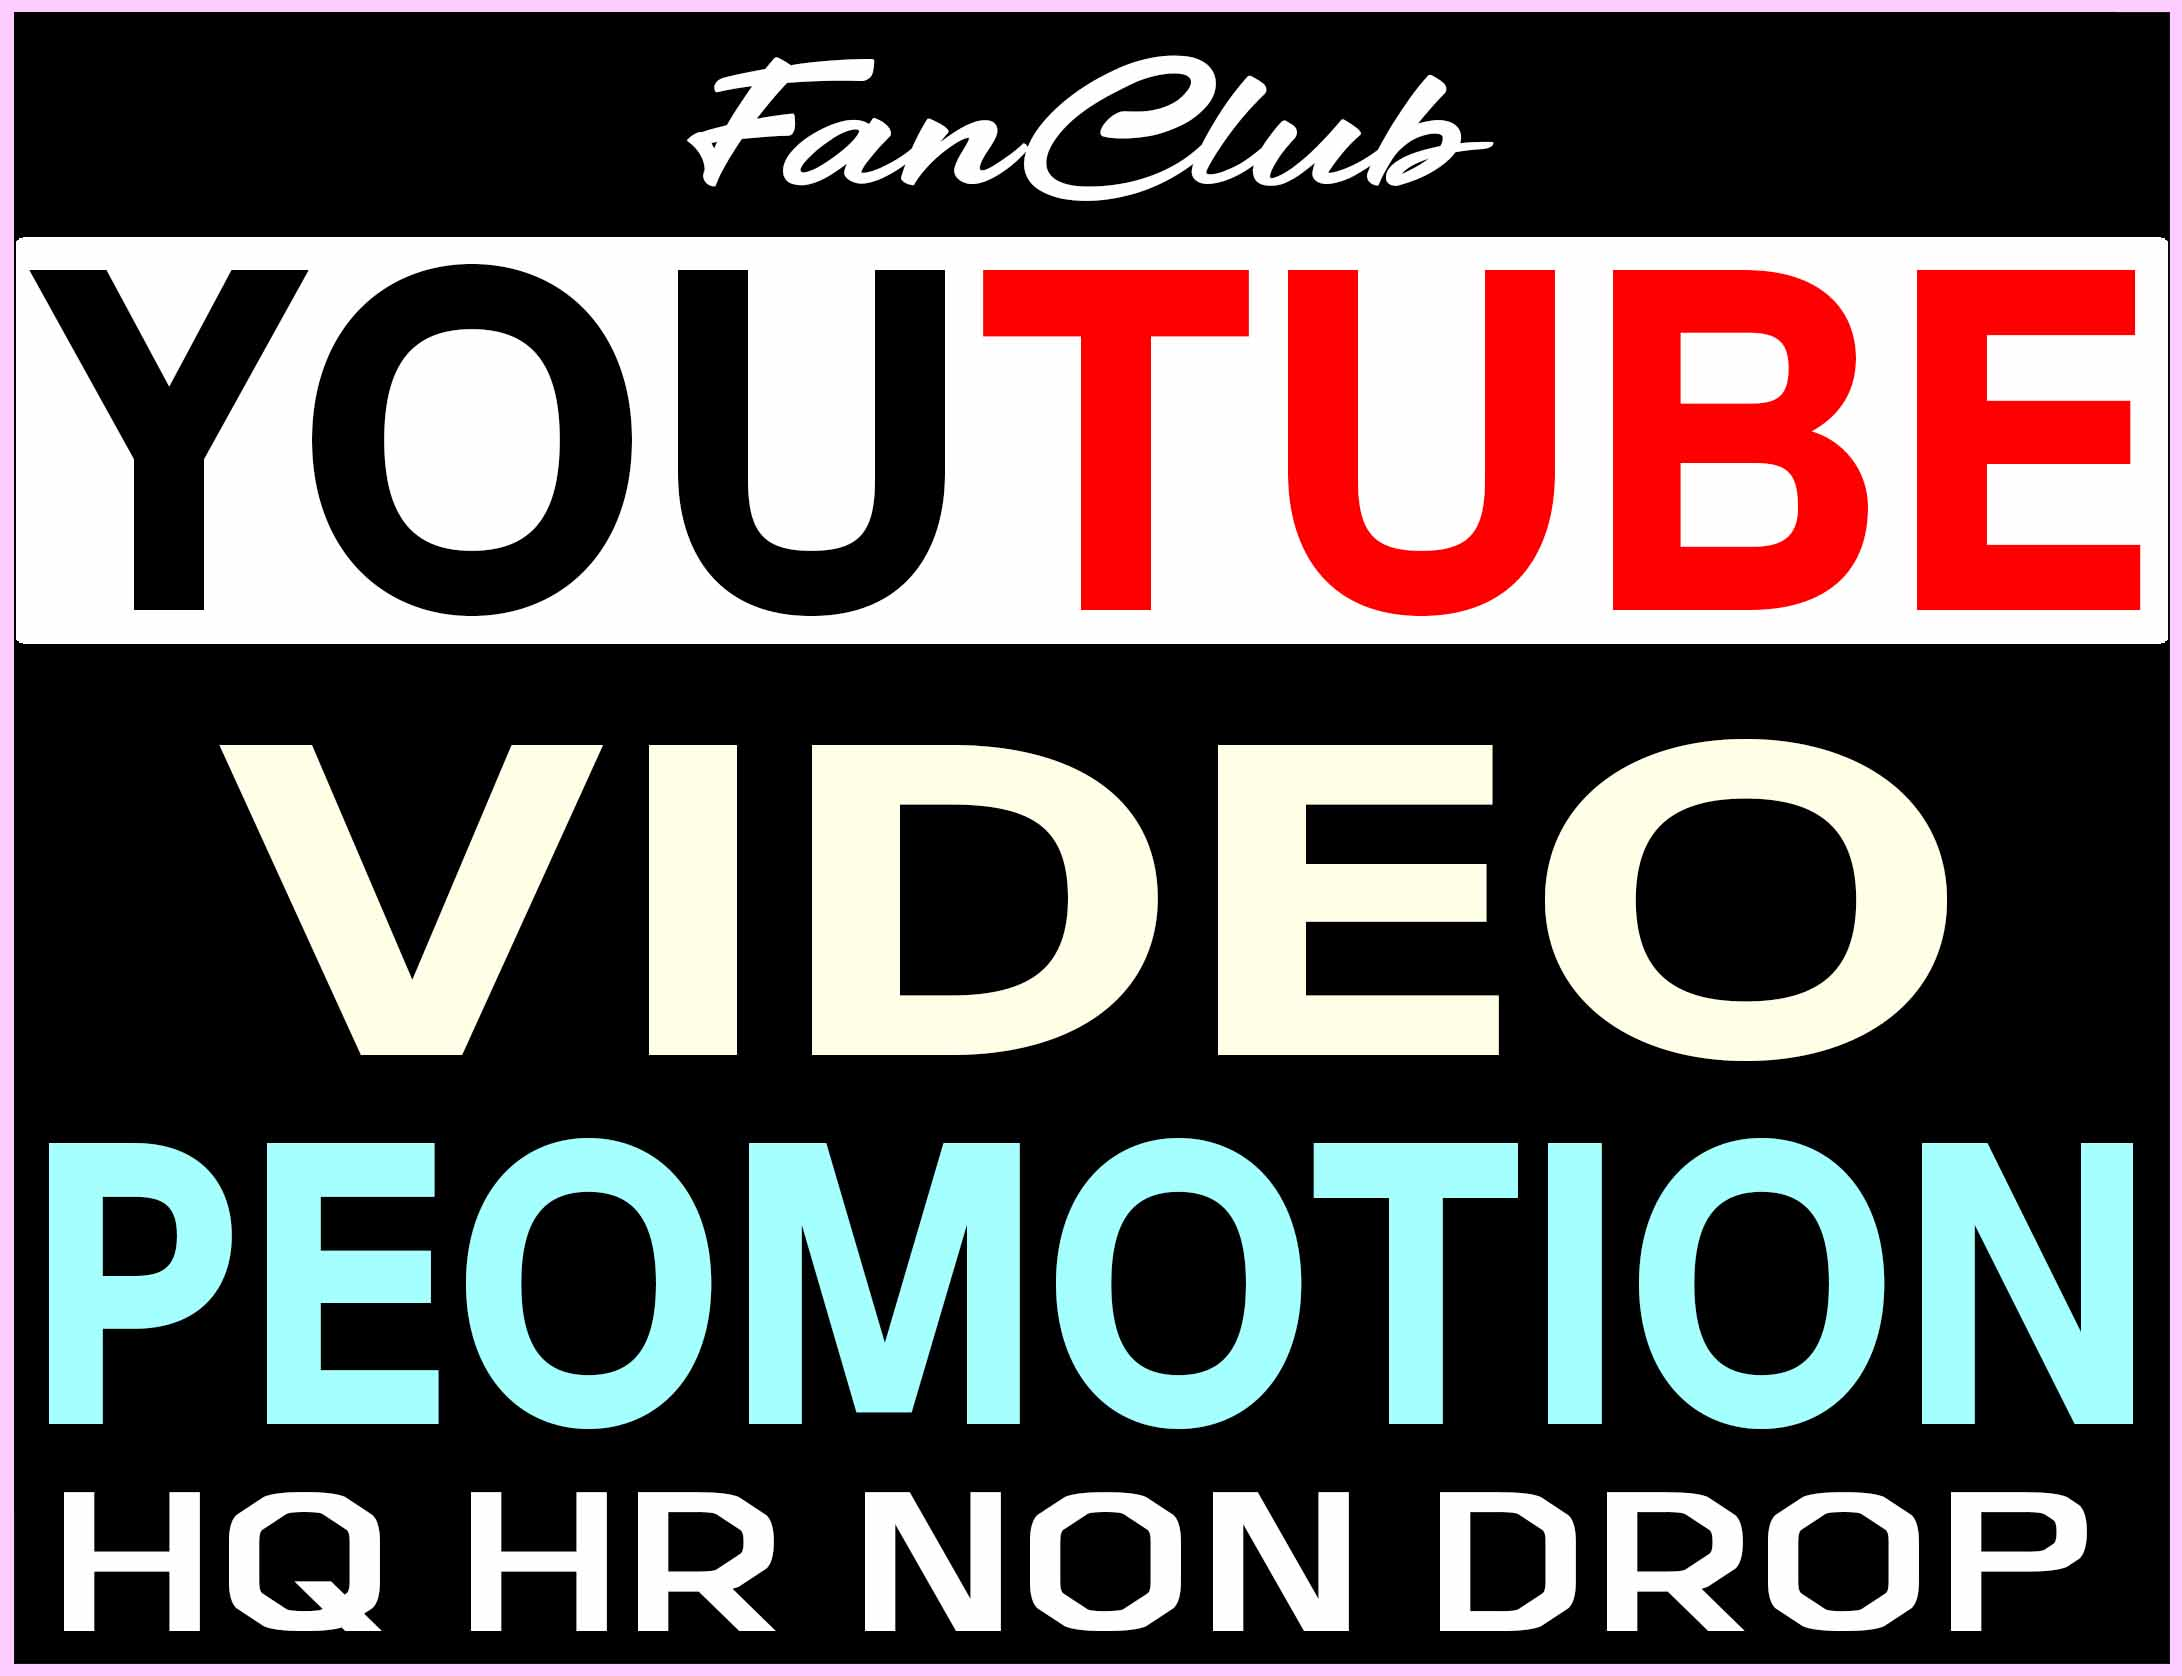 NON DROP YOUTUBE VIDEO PROMOTION AND MARKETING REAL ORGANIC SUPER FAST